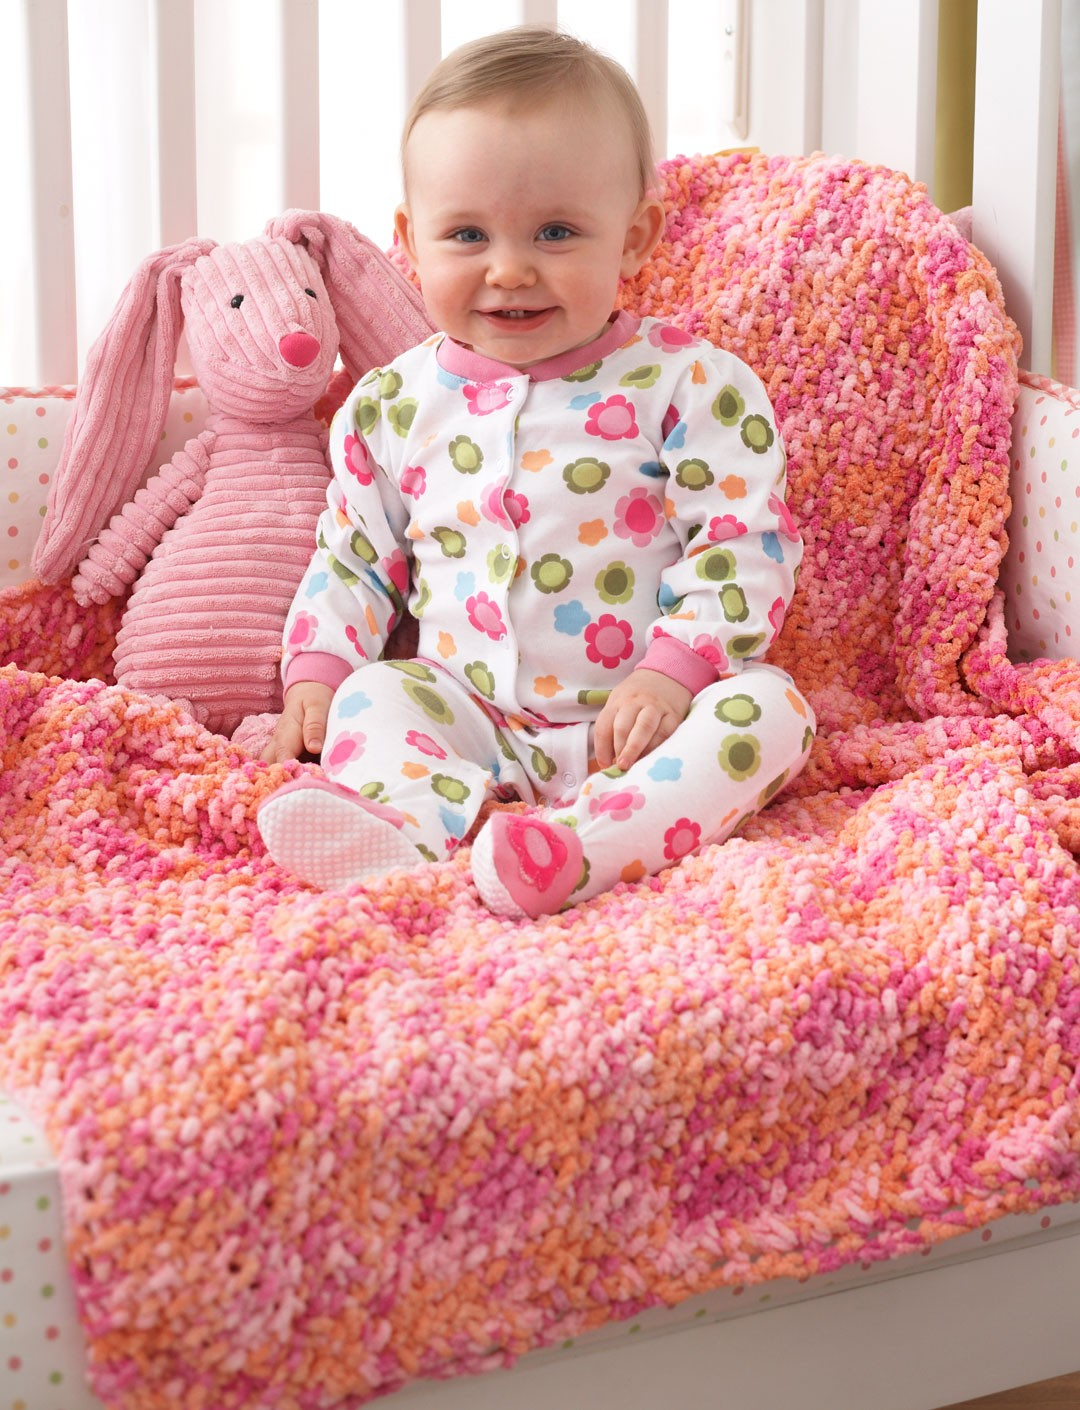 Bernat Baby Blanket Knitting Patterns : Bernat Corner to Corner Seed St Blanket, Knit Pattern Yarnspirations